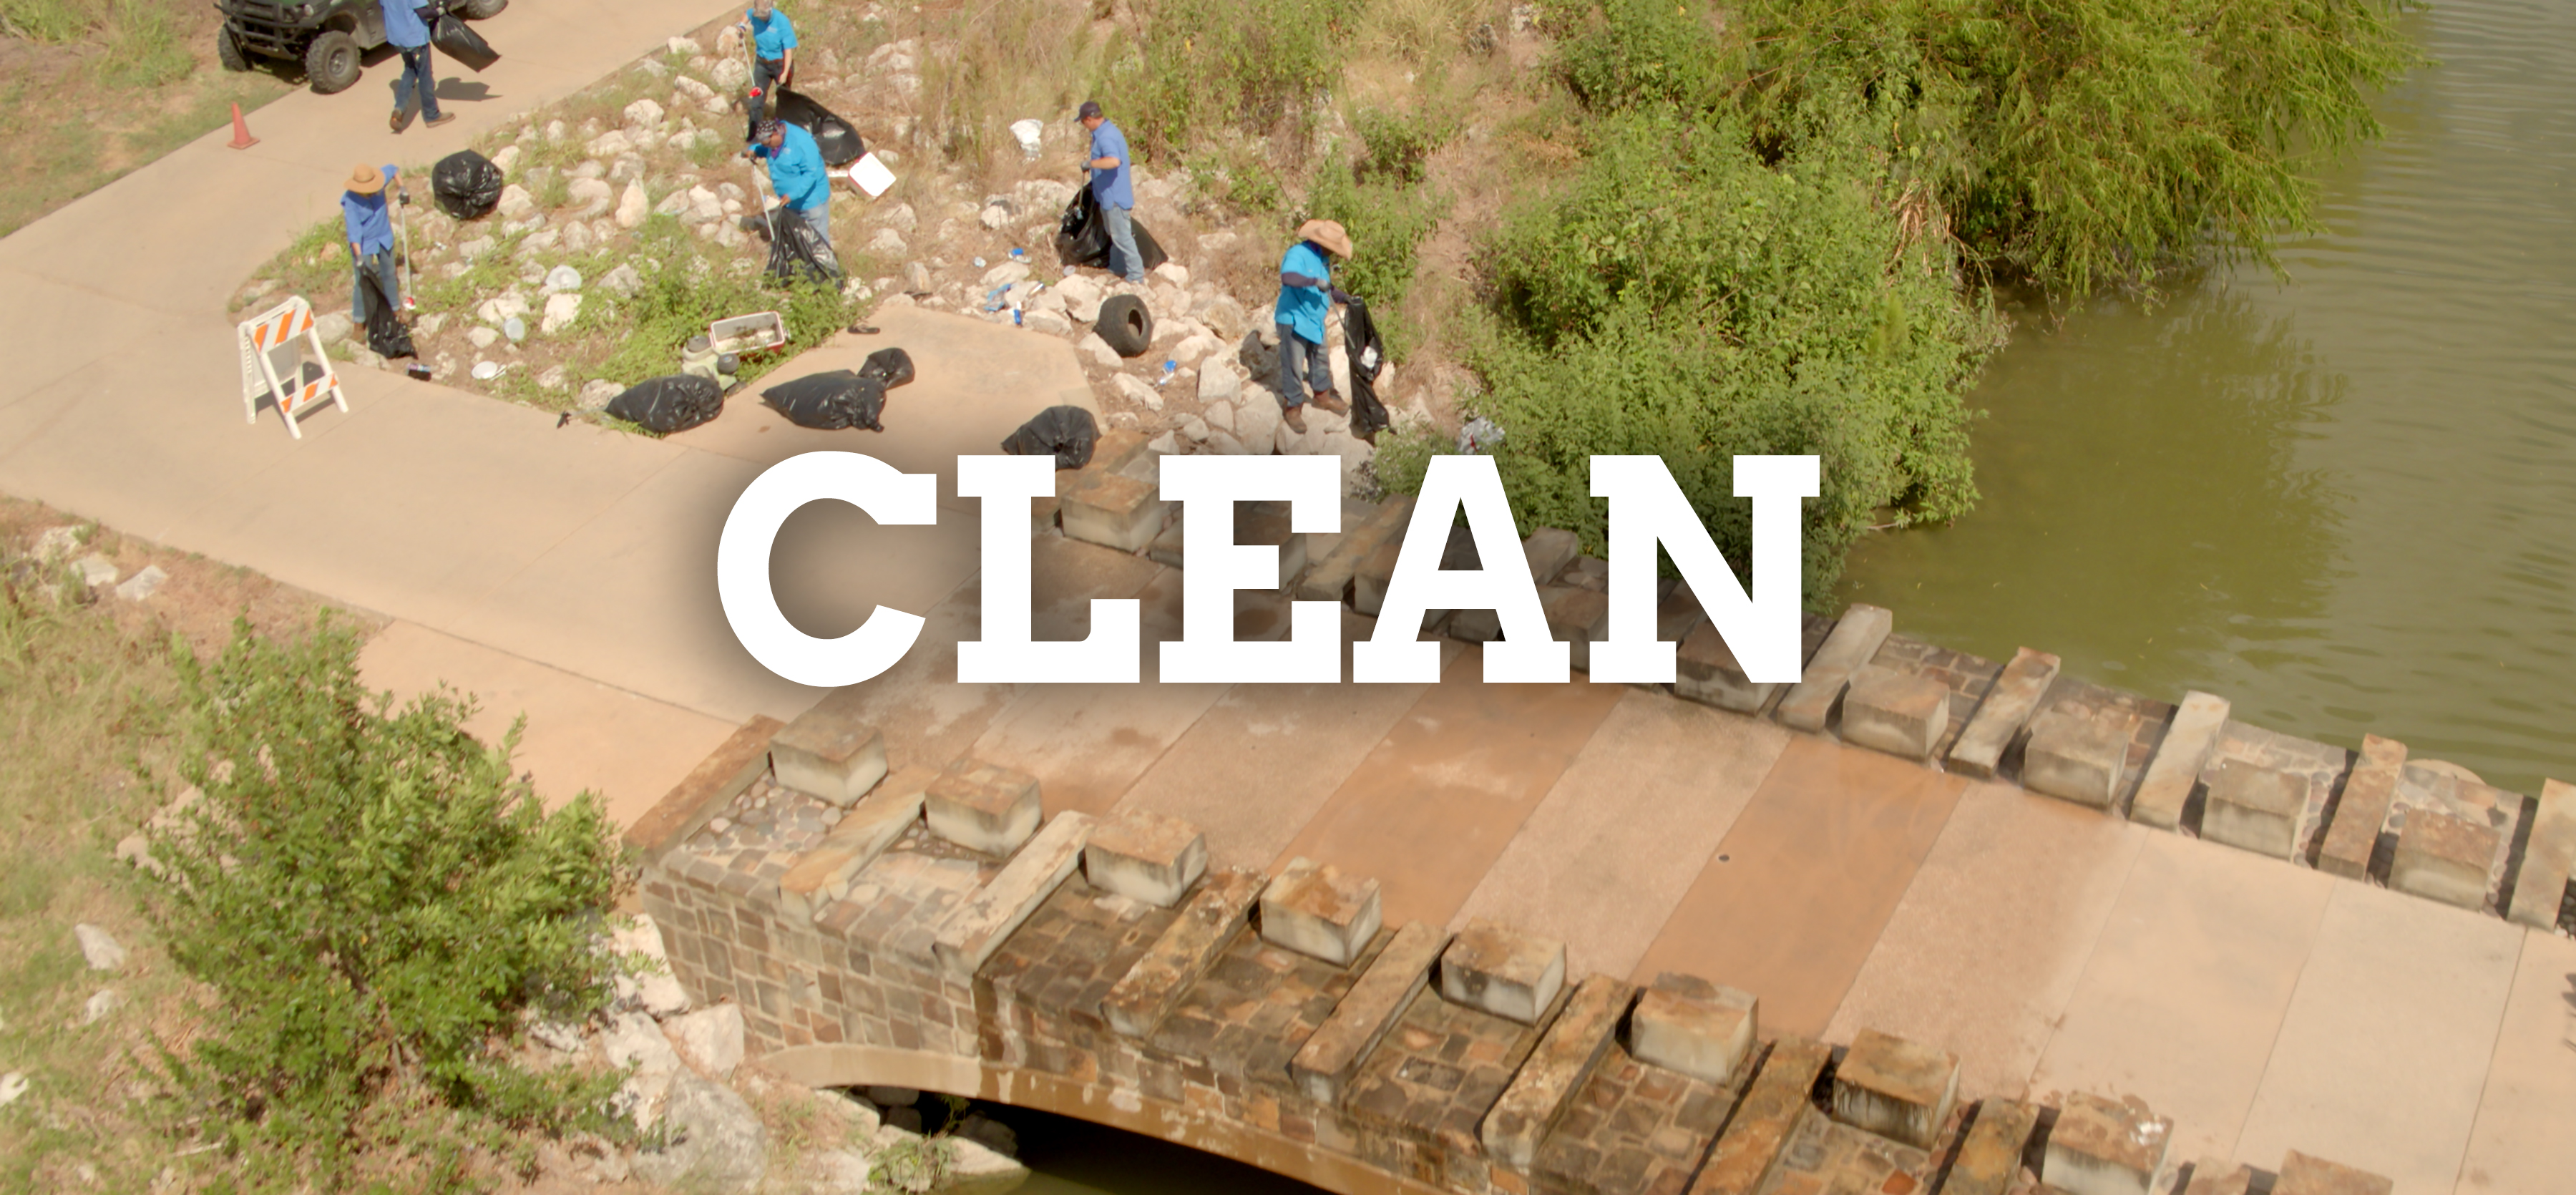 River Authority workers picking up trash along the Mission Reach